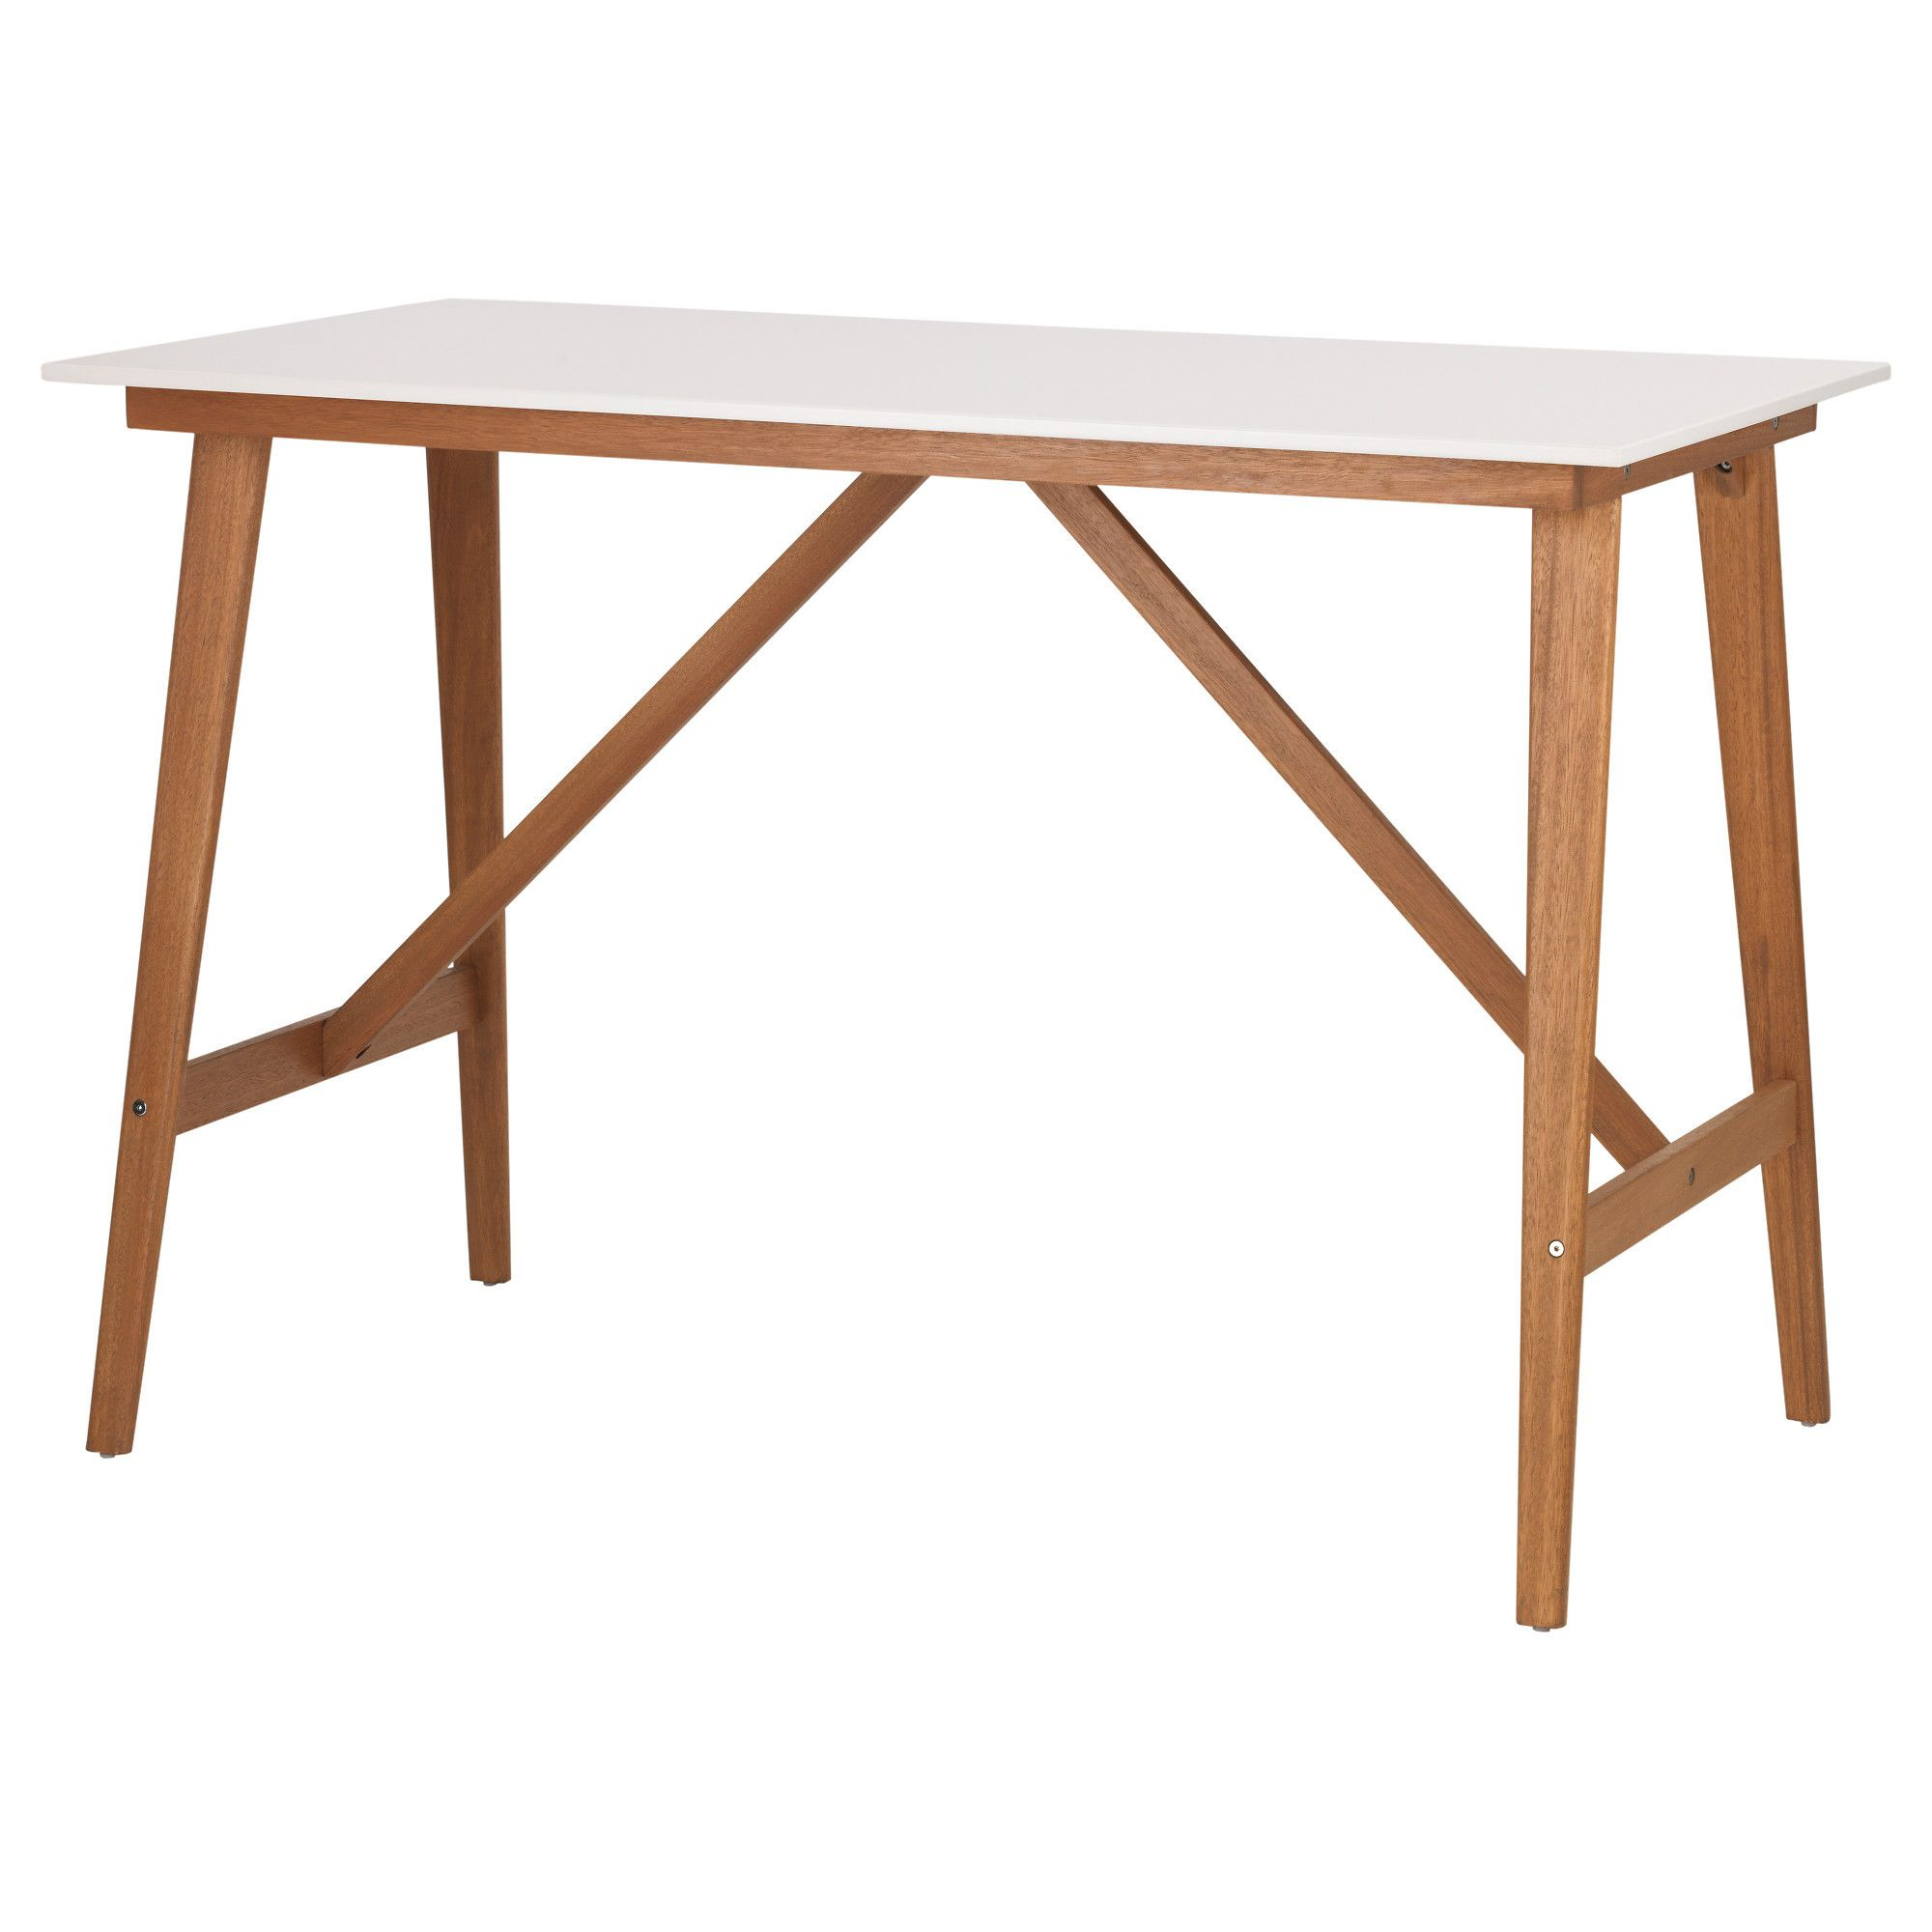 Table Pliante Ikea Norden Affordable Fabulous Trendy Cheap ... intérieur Table Pliante Ikea